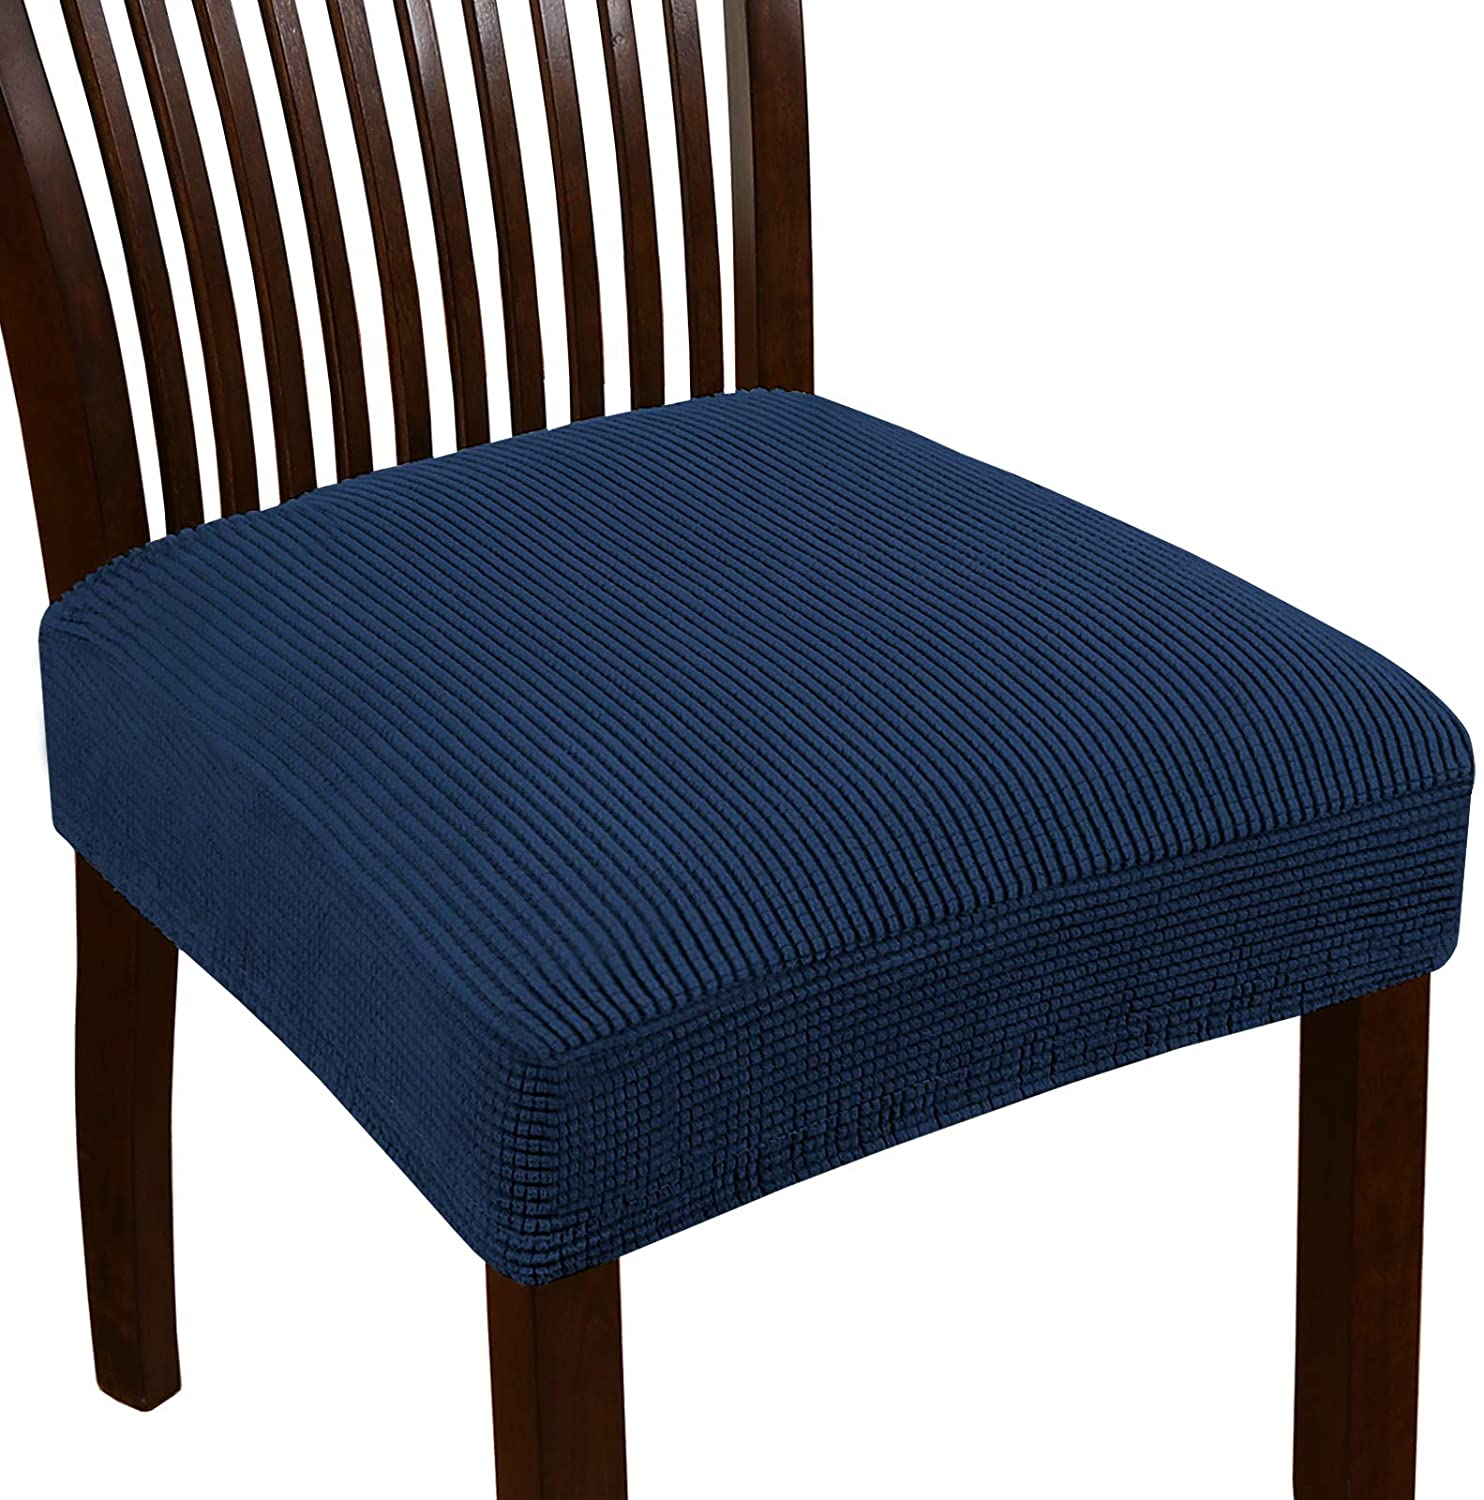 Dining Chair Seat Cover Stretch Seat Covers for Dining Room Chairs Jacquard Dining Room Chair Seat Covers Set of 6 Removable Chair Seat Cushion Slipcovers for Dining Room (6 Pack, Navy)